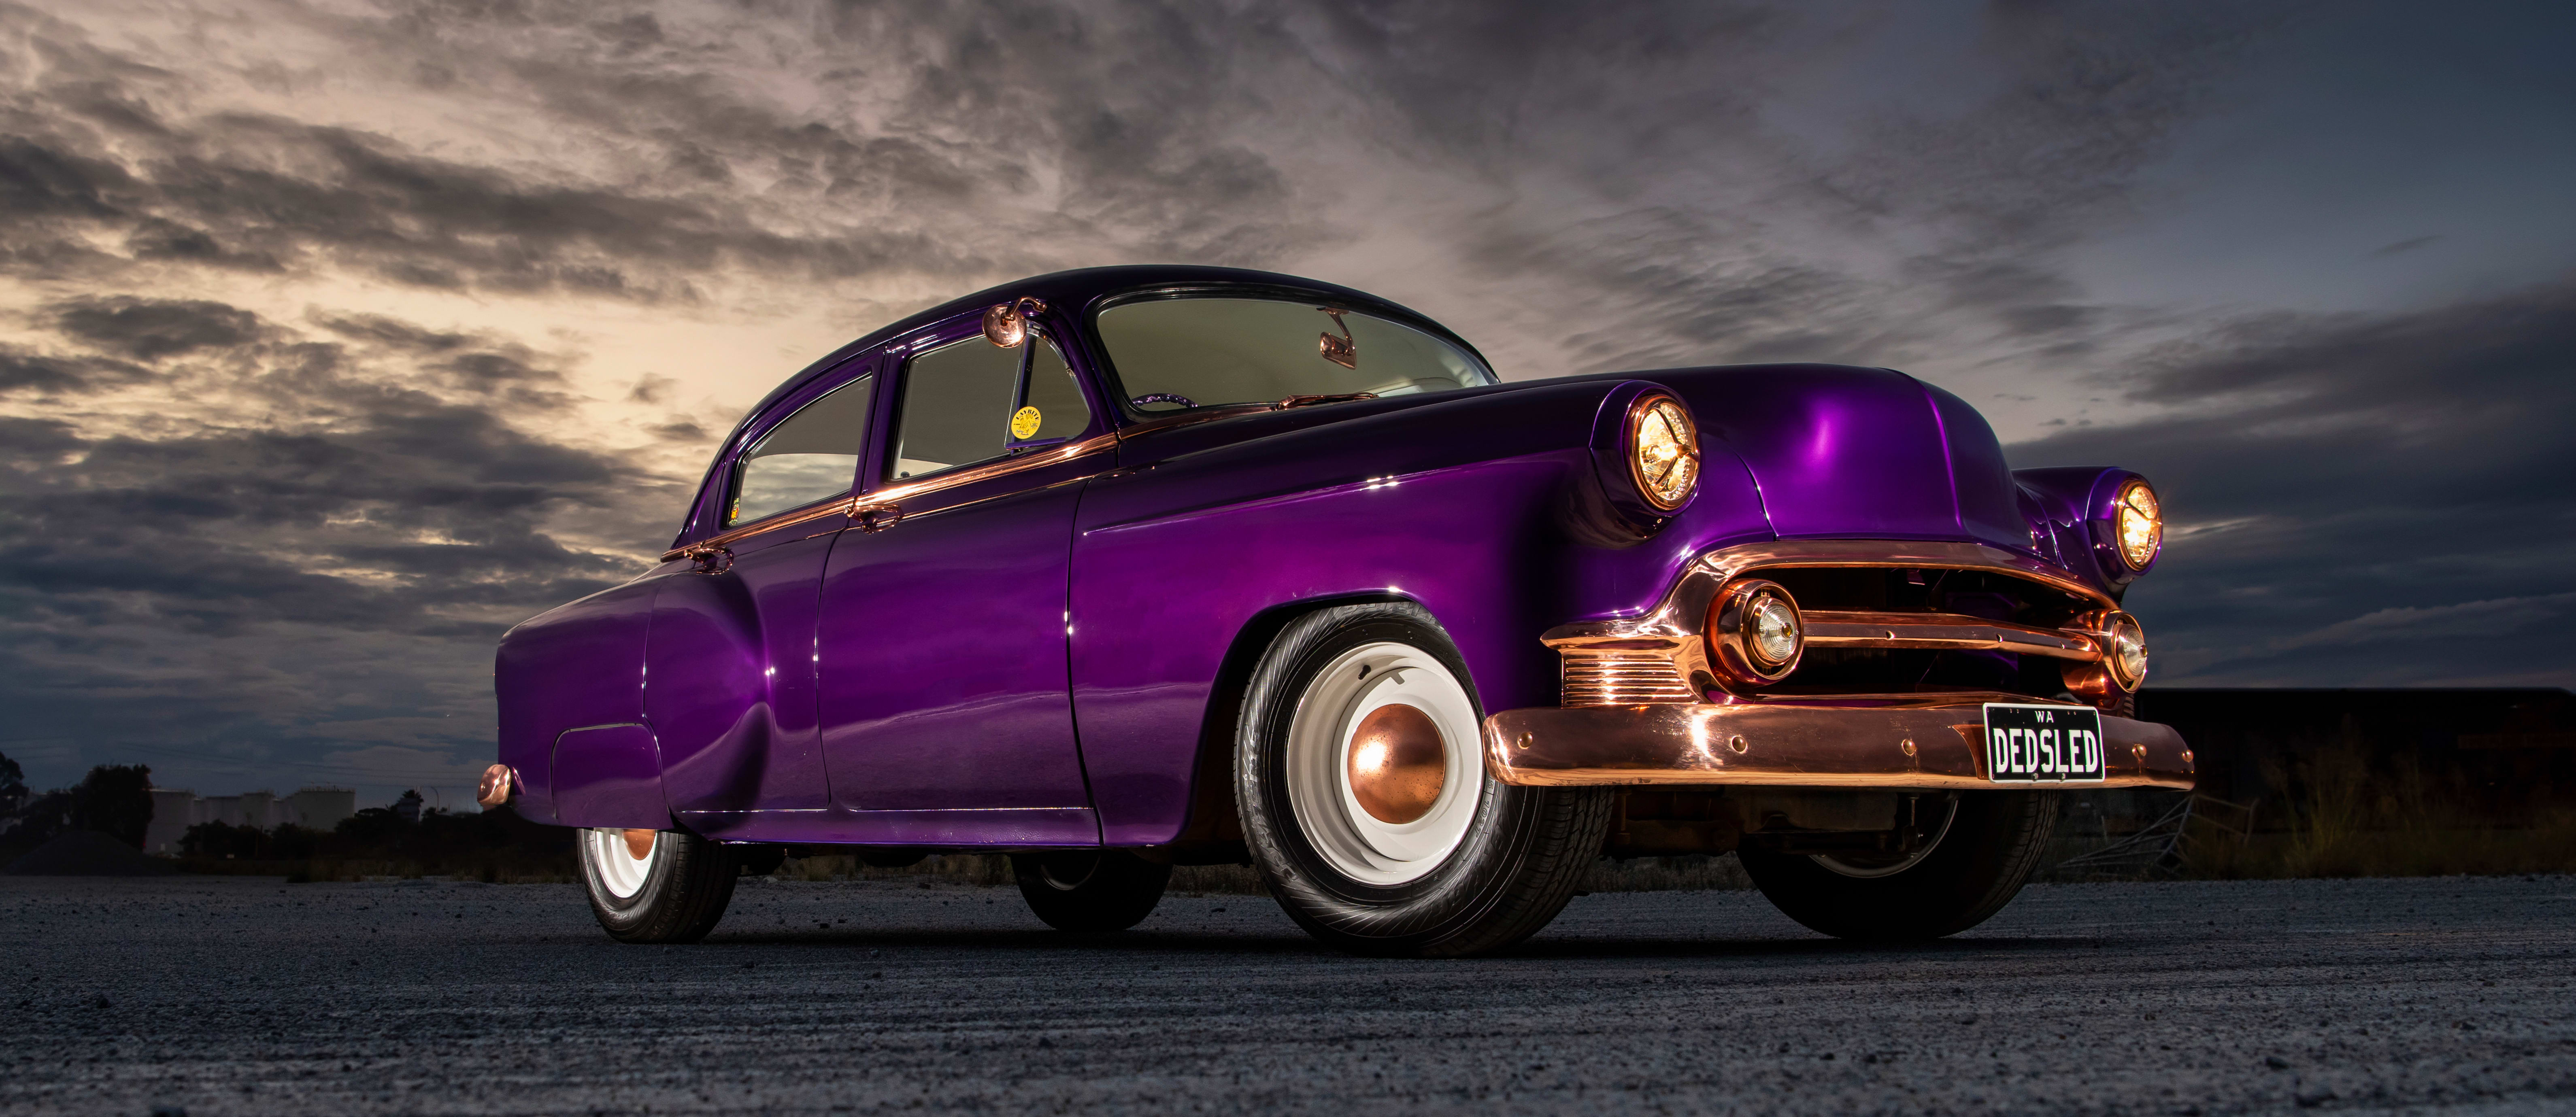 1953 Chevy sled